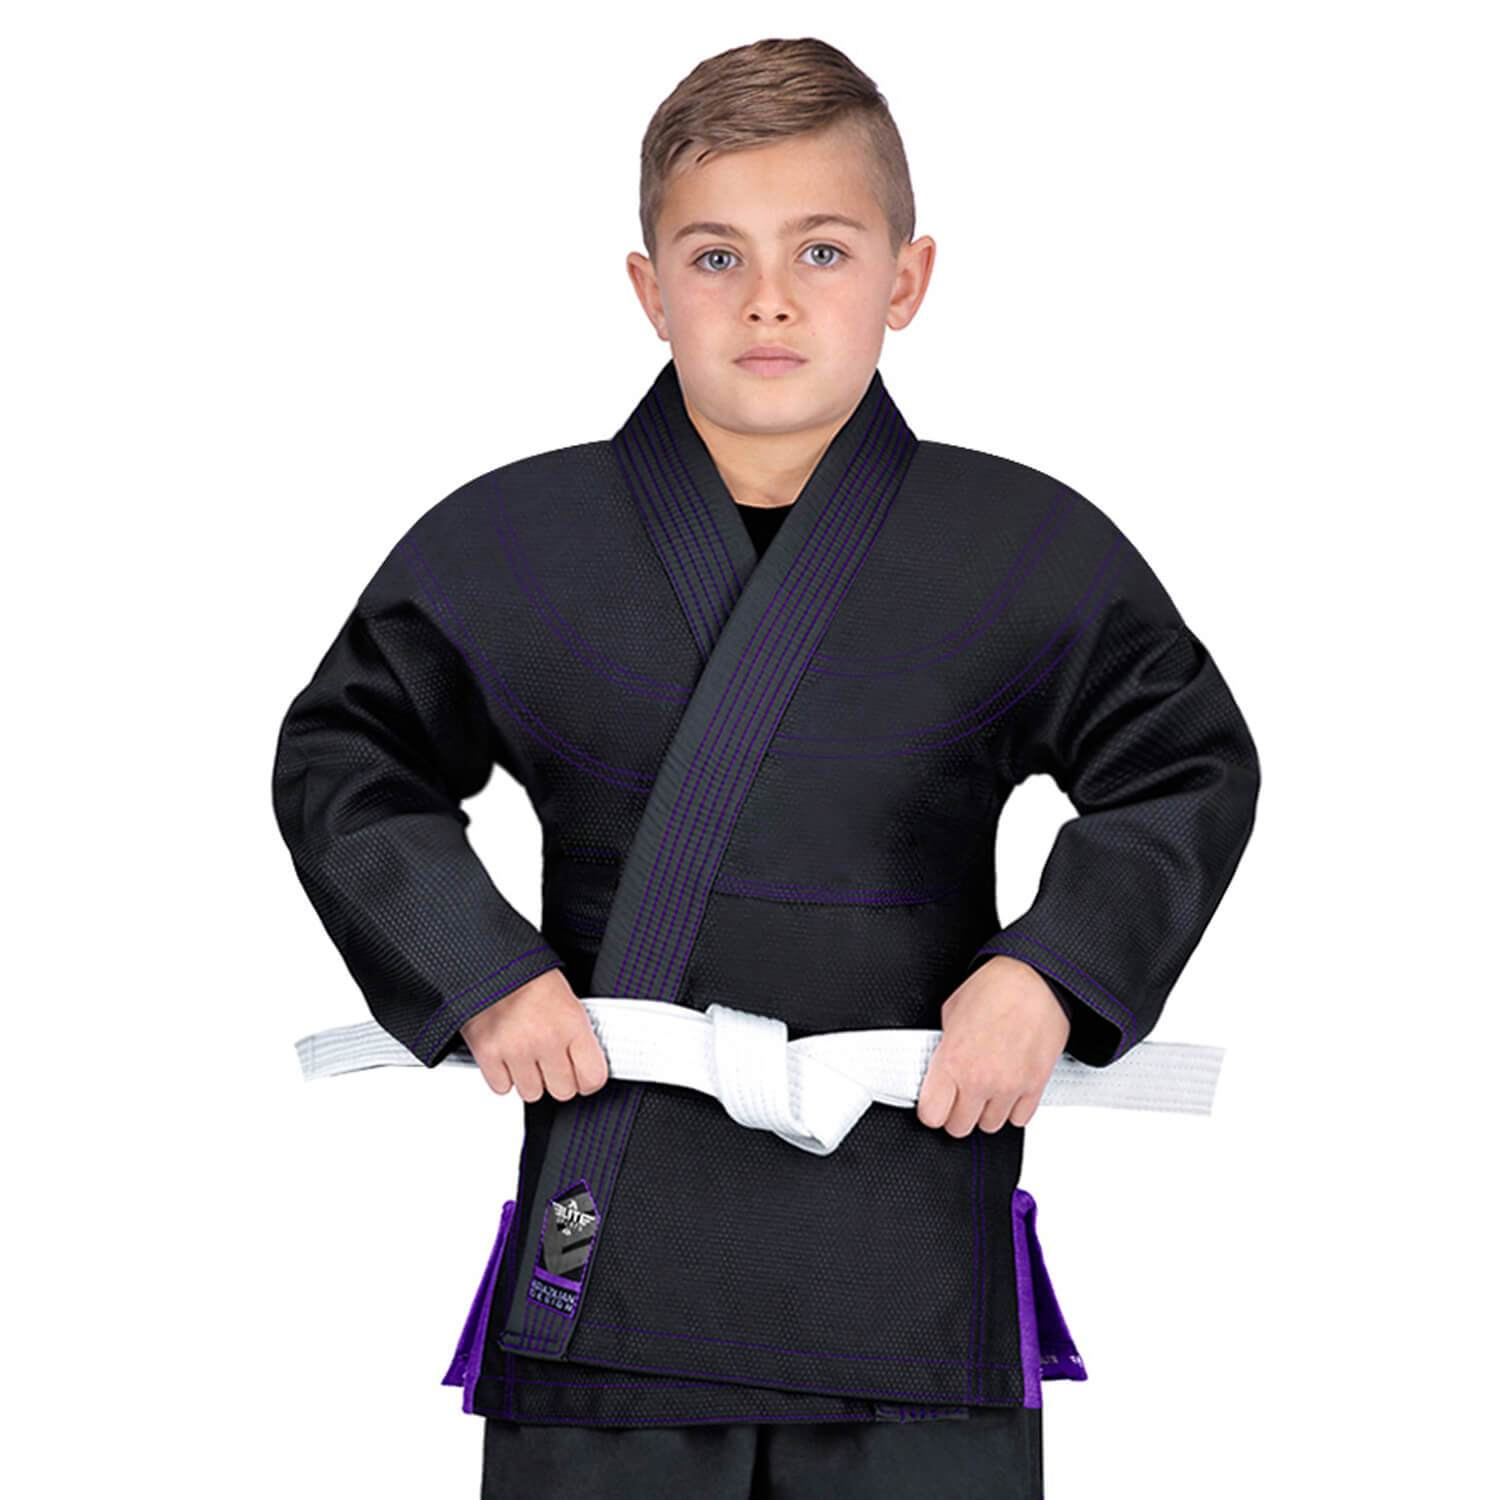 Elite Sports Essential Ultra Light Preshrunk Black Kids Brazilian Jiu Jitsu BJJ Gi With Free White Belt